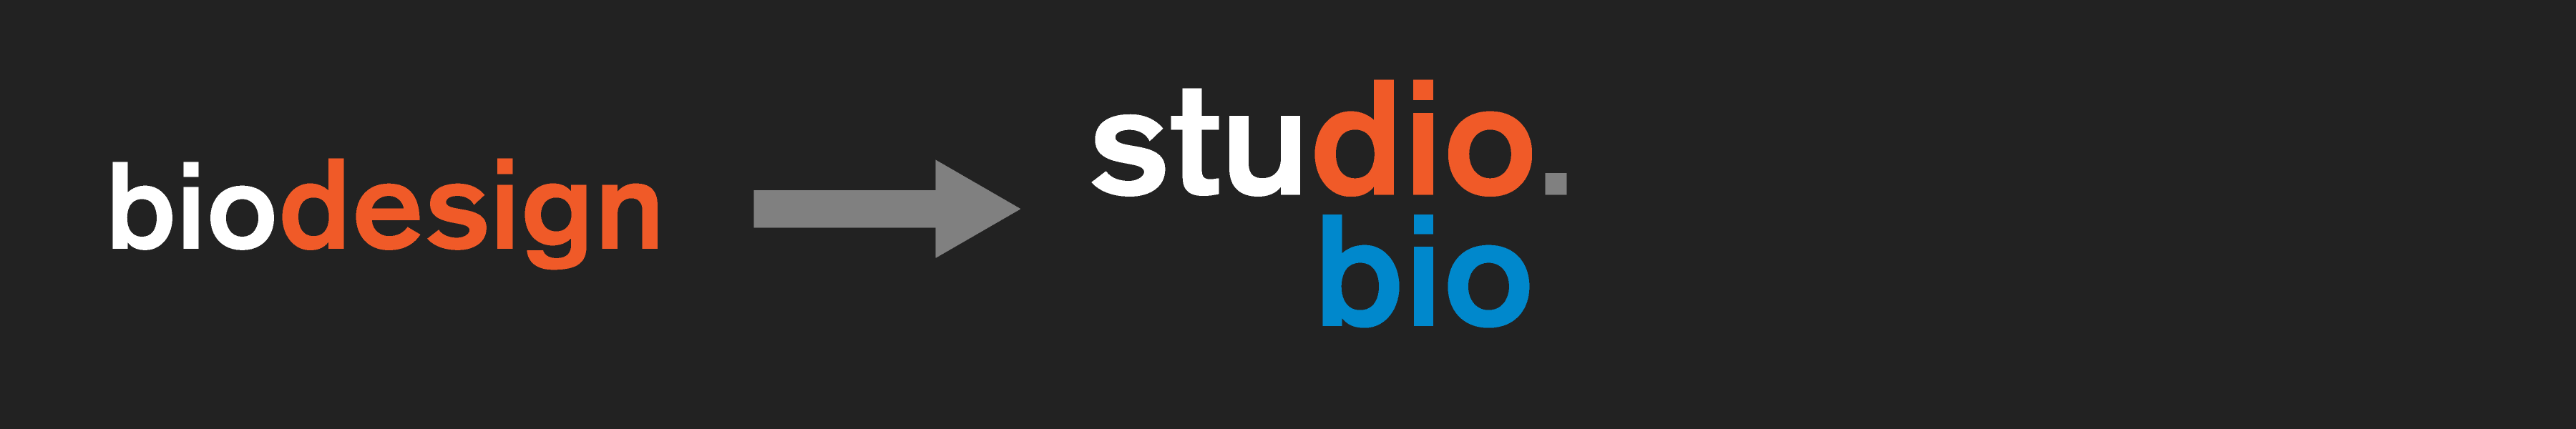 BioDesign studio.bio